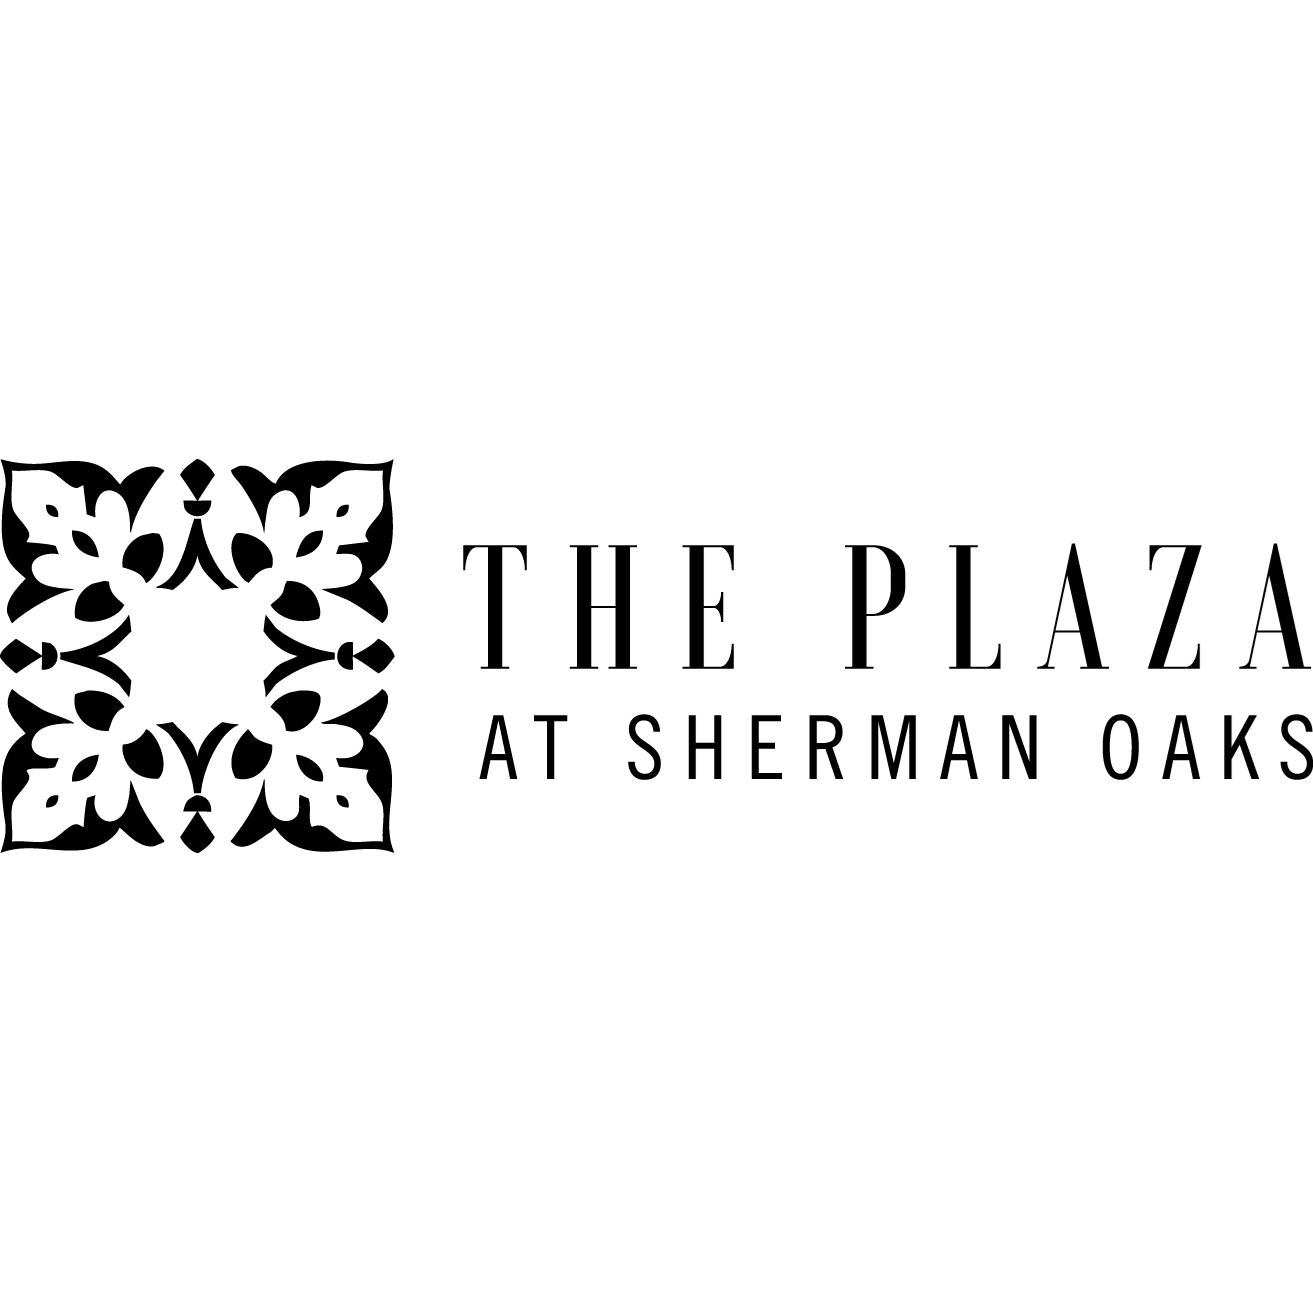 Plaza at Sherman Oaks